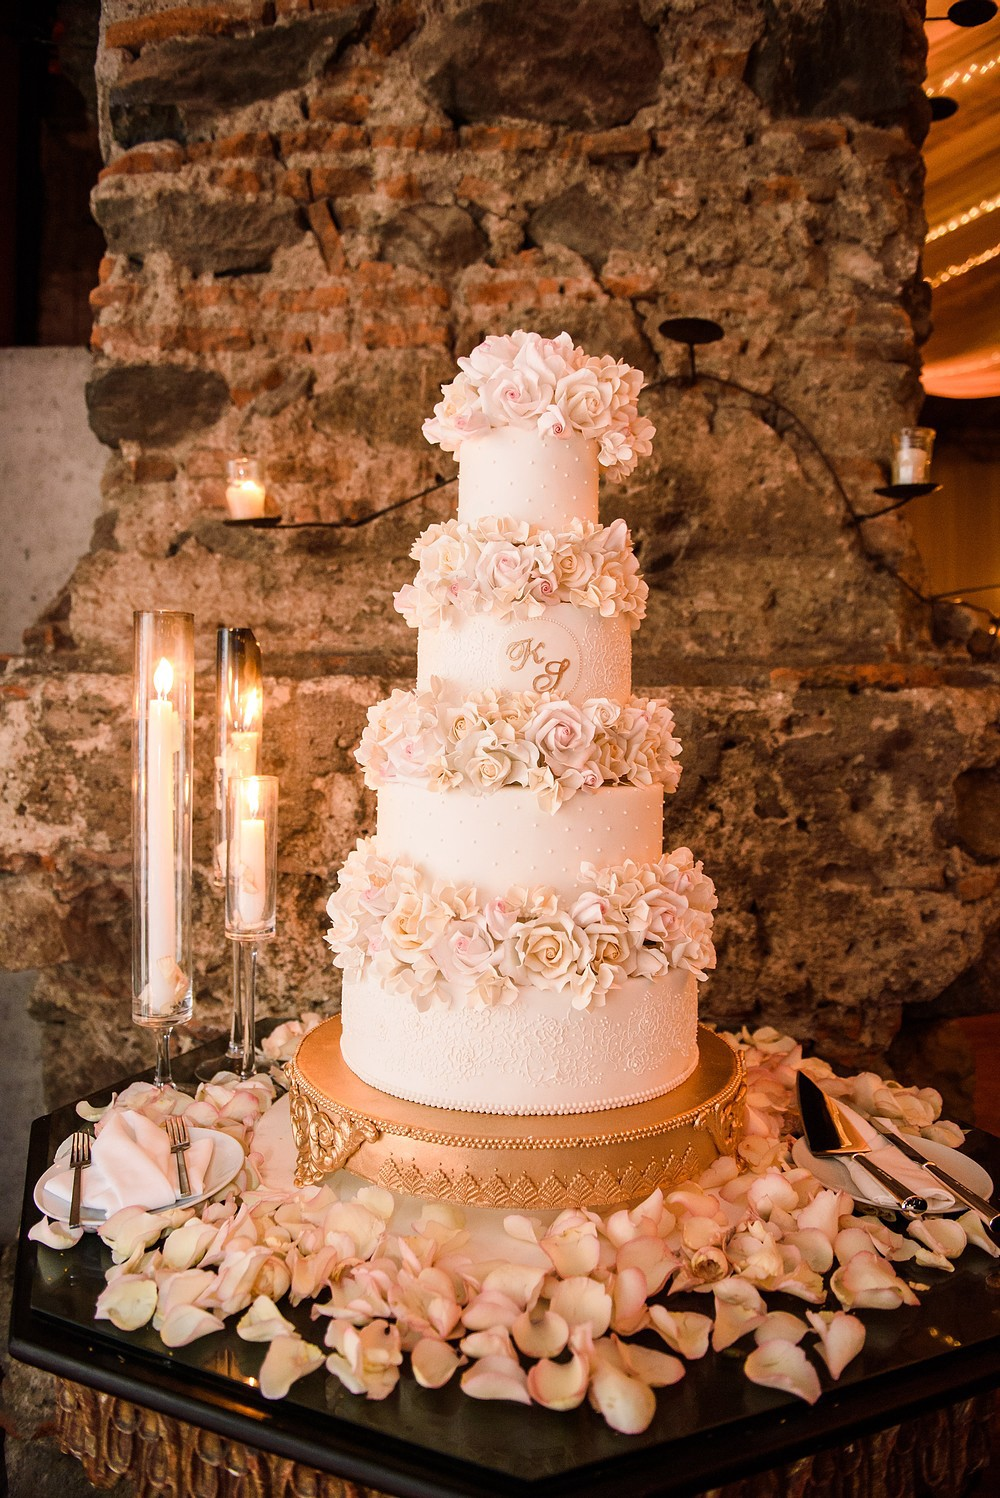 A white 4-tier wedding cake with fondant flowers between the tiers. Sitting on a golden cake stand, surrounded by candles.